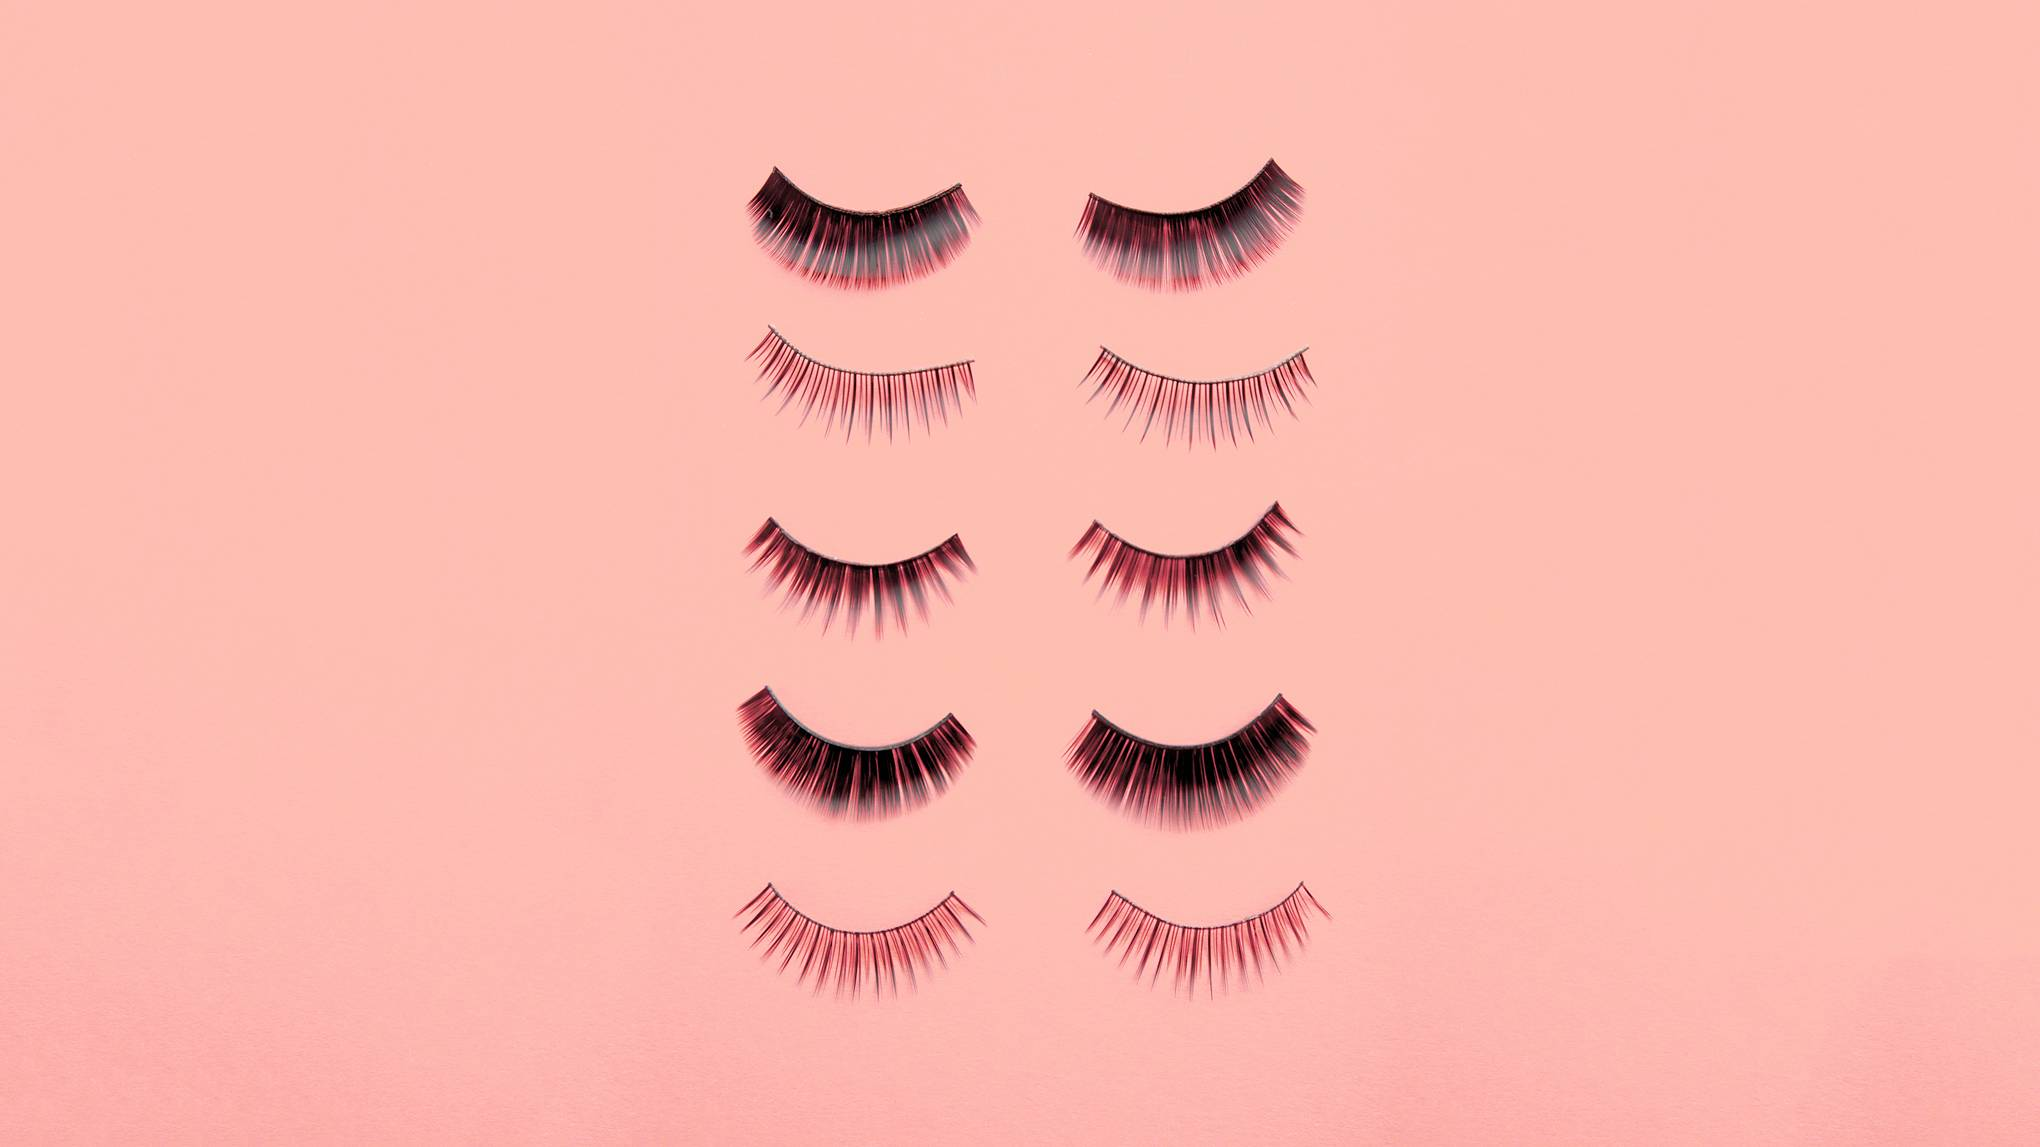 2db58b4d7c3 Woman's Photo Of False Eyelashes Goes Viral After They Arrive Not As  Expected | Glamour UK